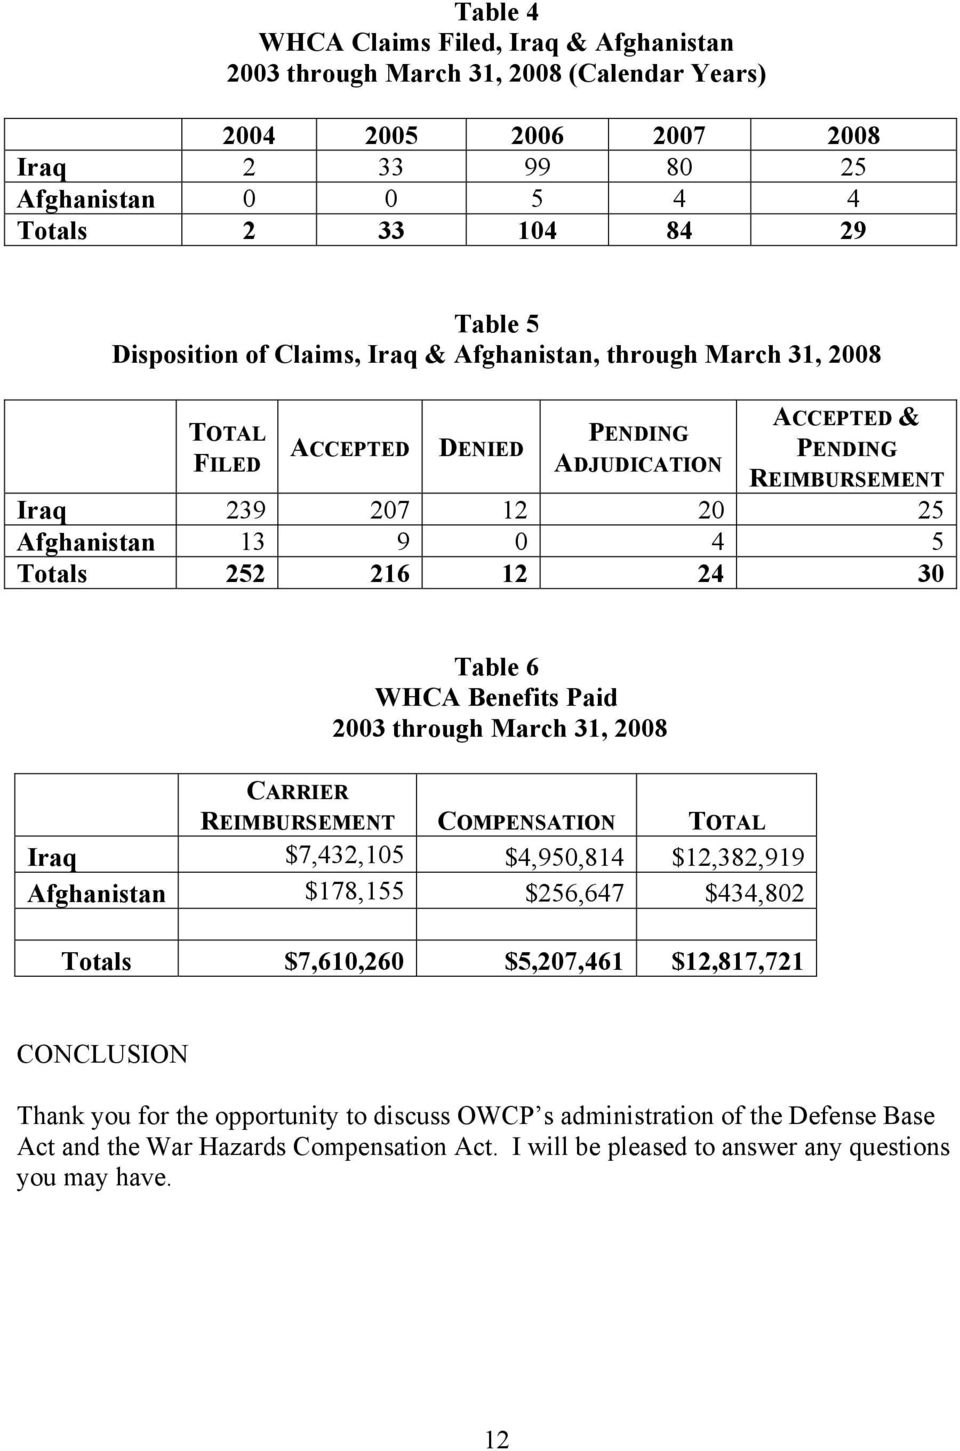 24 30 Table 6 WHCA Benefits Paid 2003 through March 31, 2008 CARRIER REIMBURSEMENT COMPENSATION TOTAL Iraq $7,432,105 $4,950,814 $12,382,919 Afghanistan $178,155 $256,647 $434,802 Totals $7,610,260